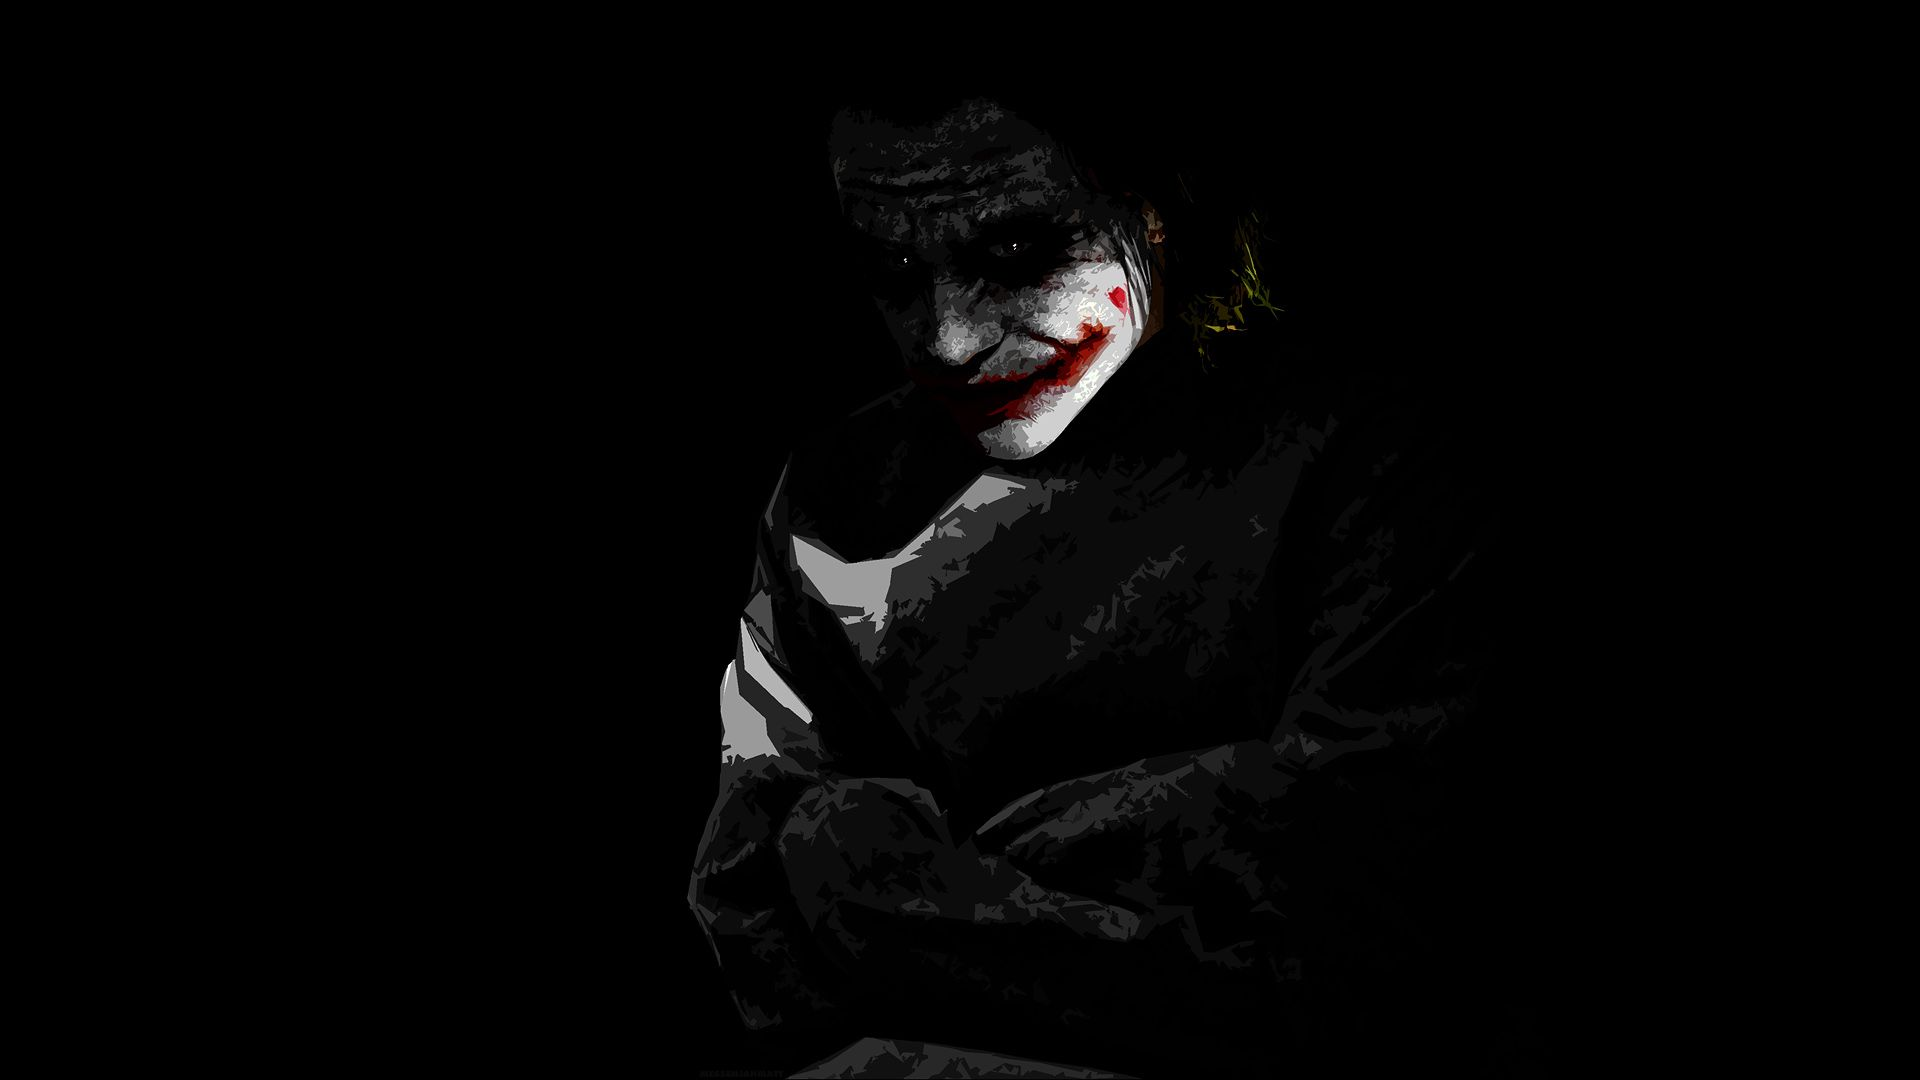 Joker Hd Wallpapers With Images Joker Hd Wallpaper